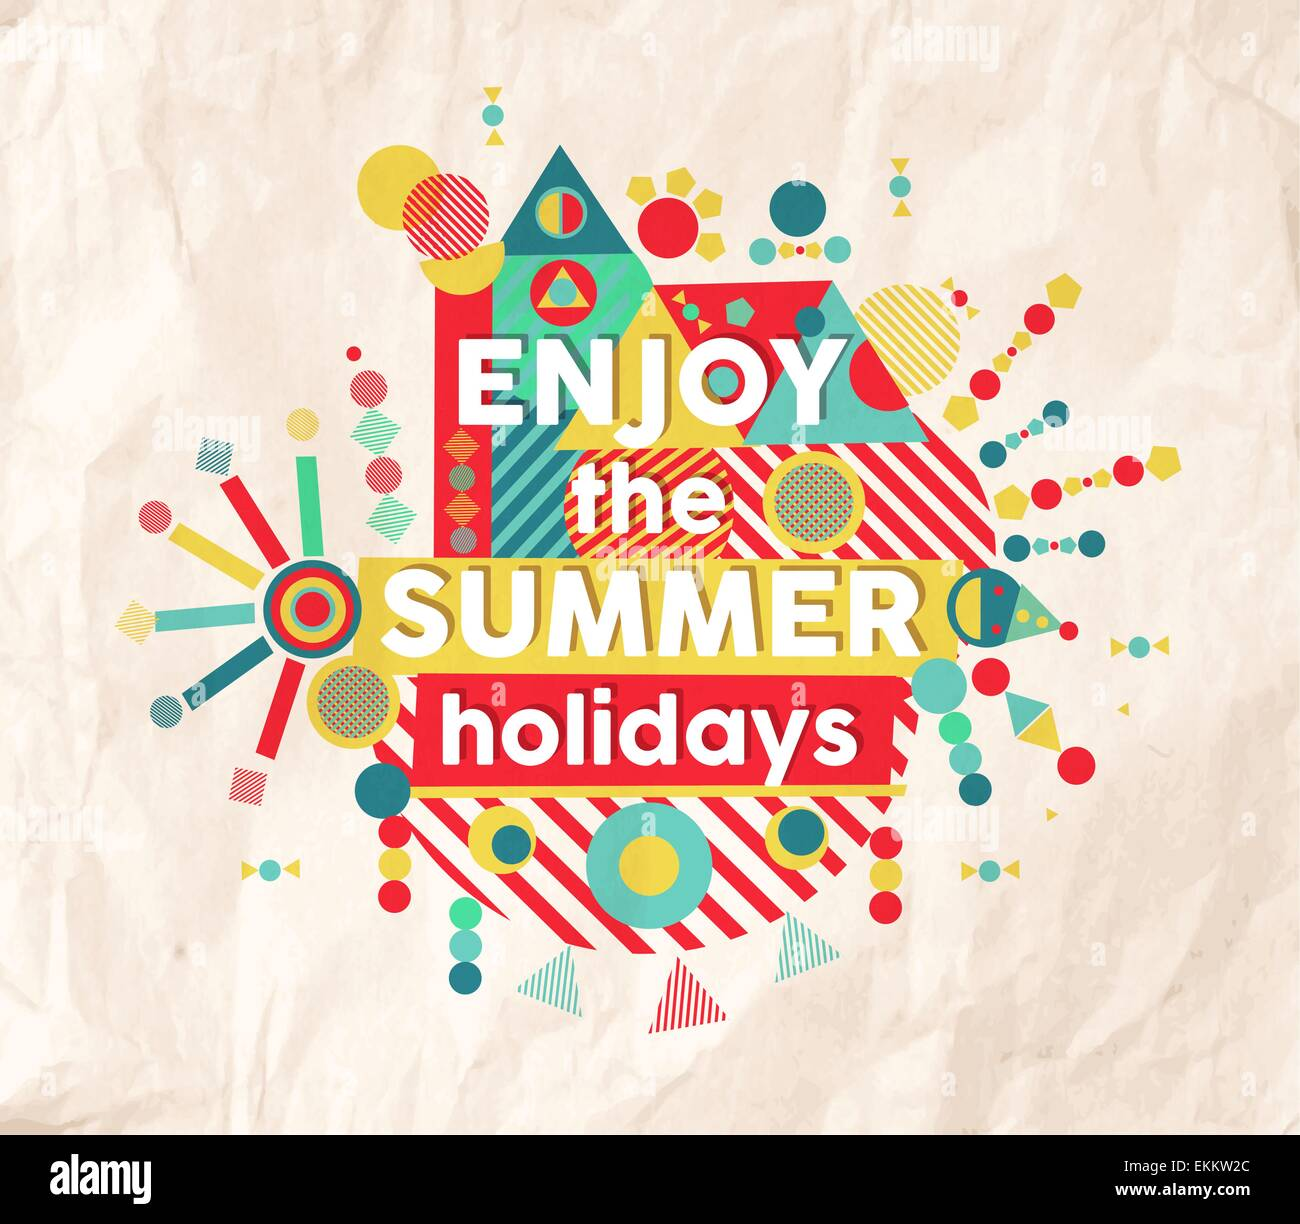 Enjoy The Summer Holidays Colorful Typography Poster Fun